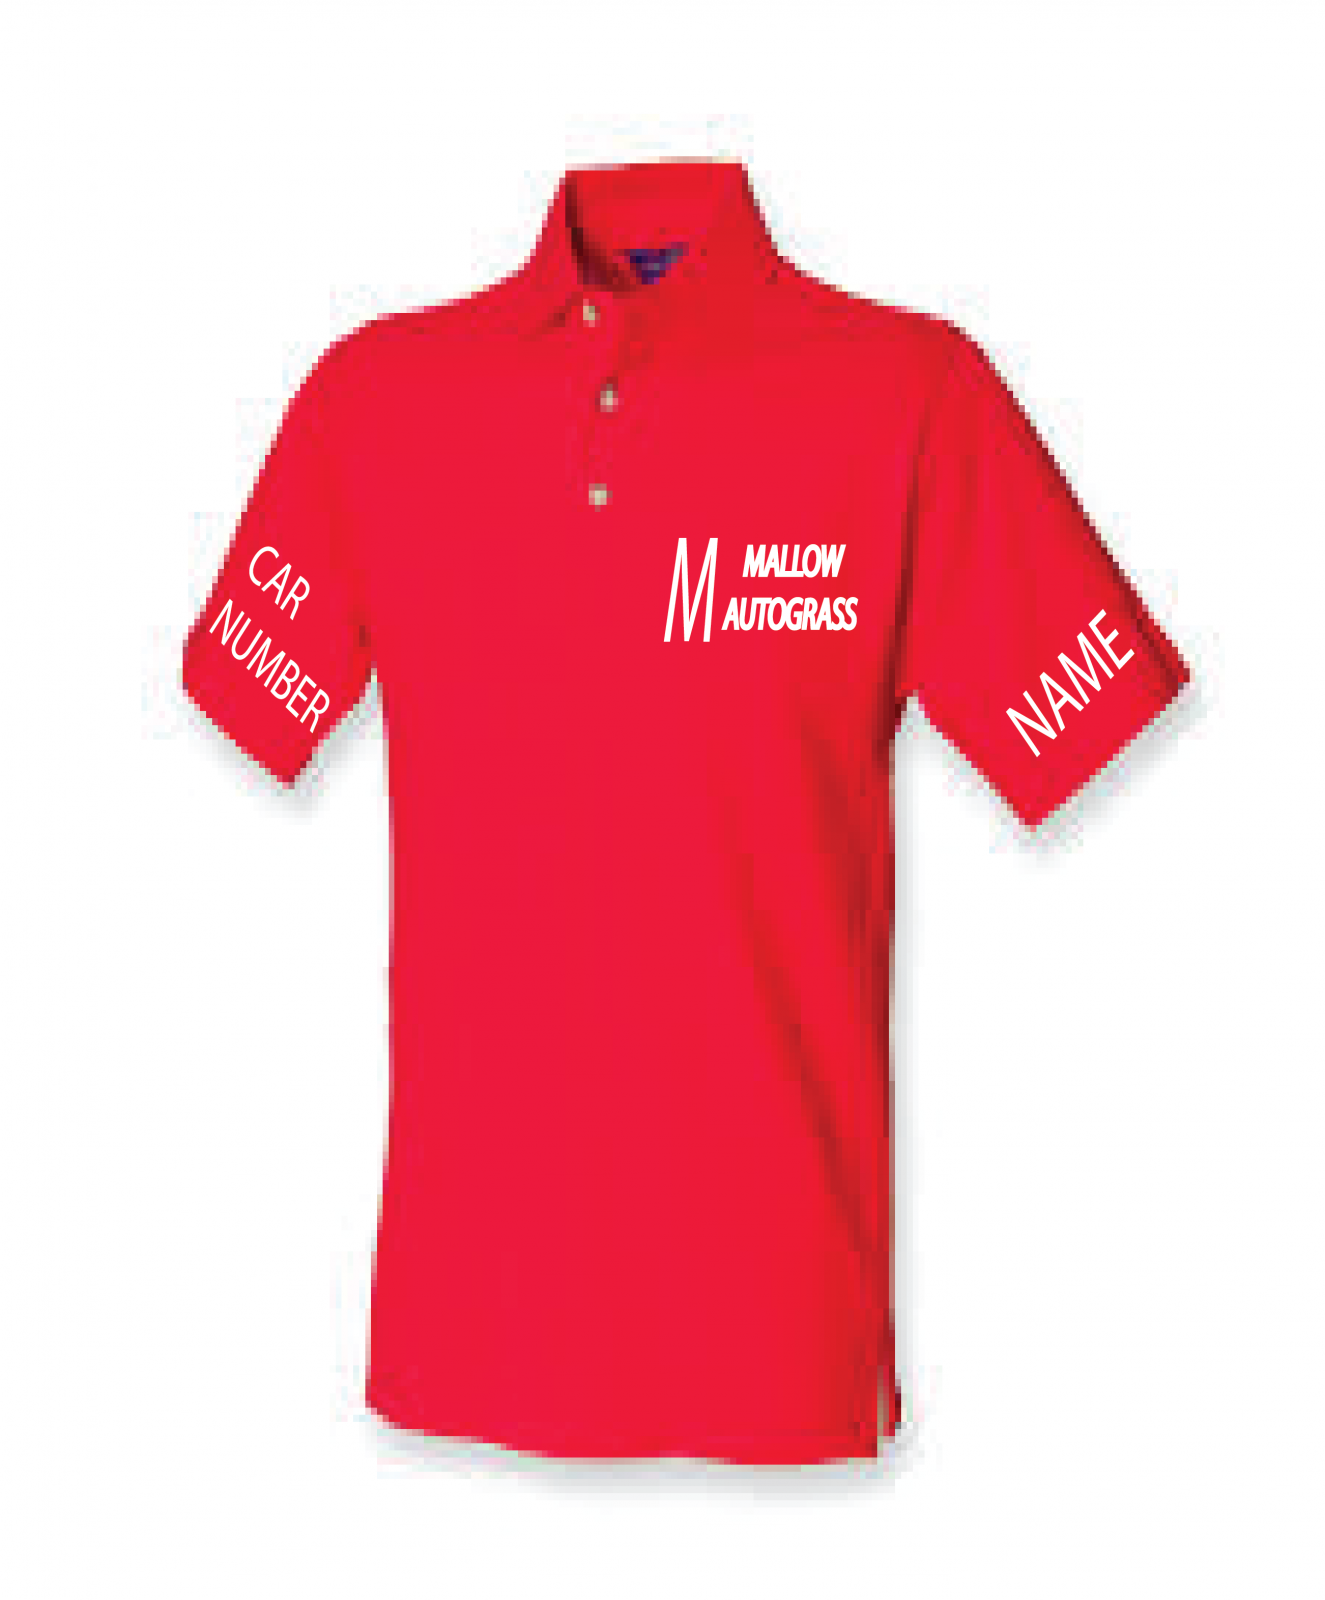 South Africa Rugby T Shirt By Mailboxdisco Design By Humans: Mallow AutoGrass Polo Shirt Men With Name And Car Number